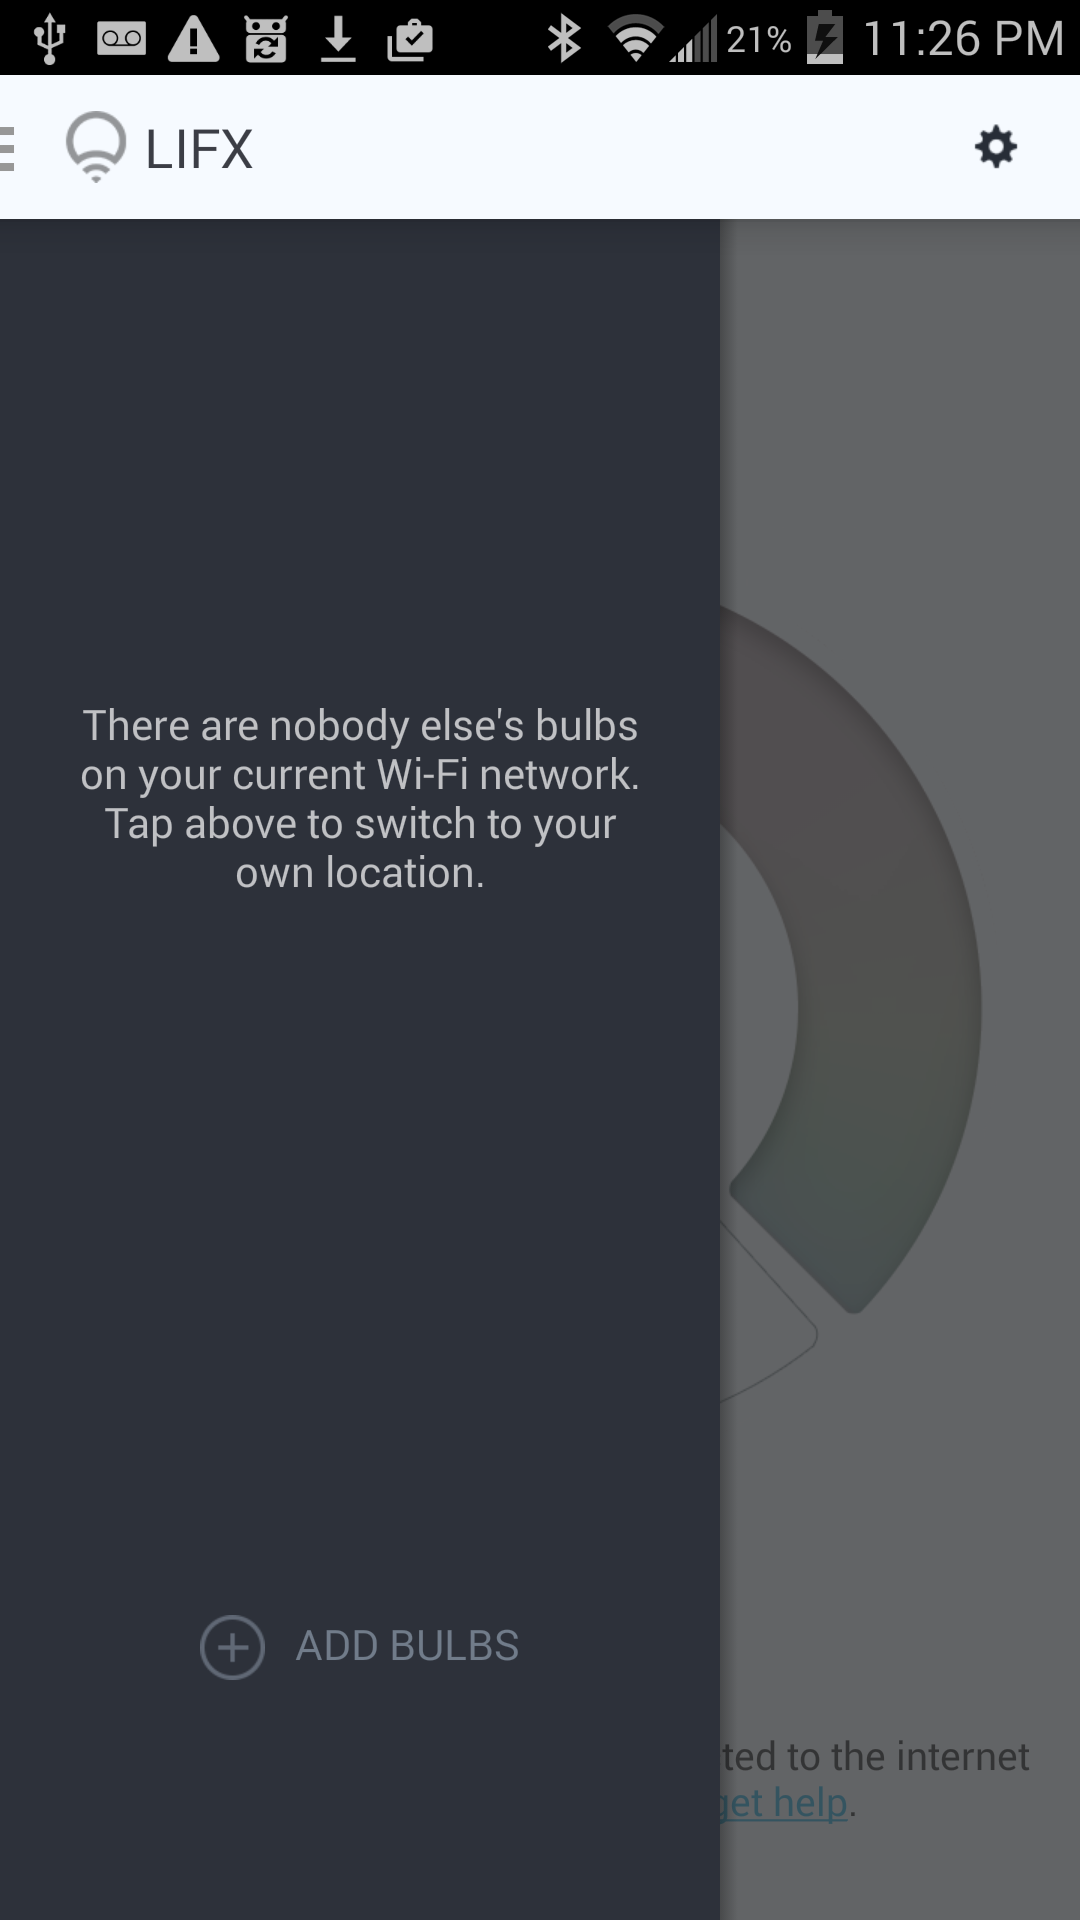 There are nobody else's bulbs on your current Wi-Fi network.  Tap above to switch to your own location.